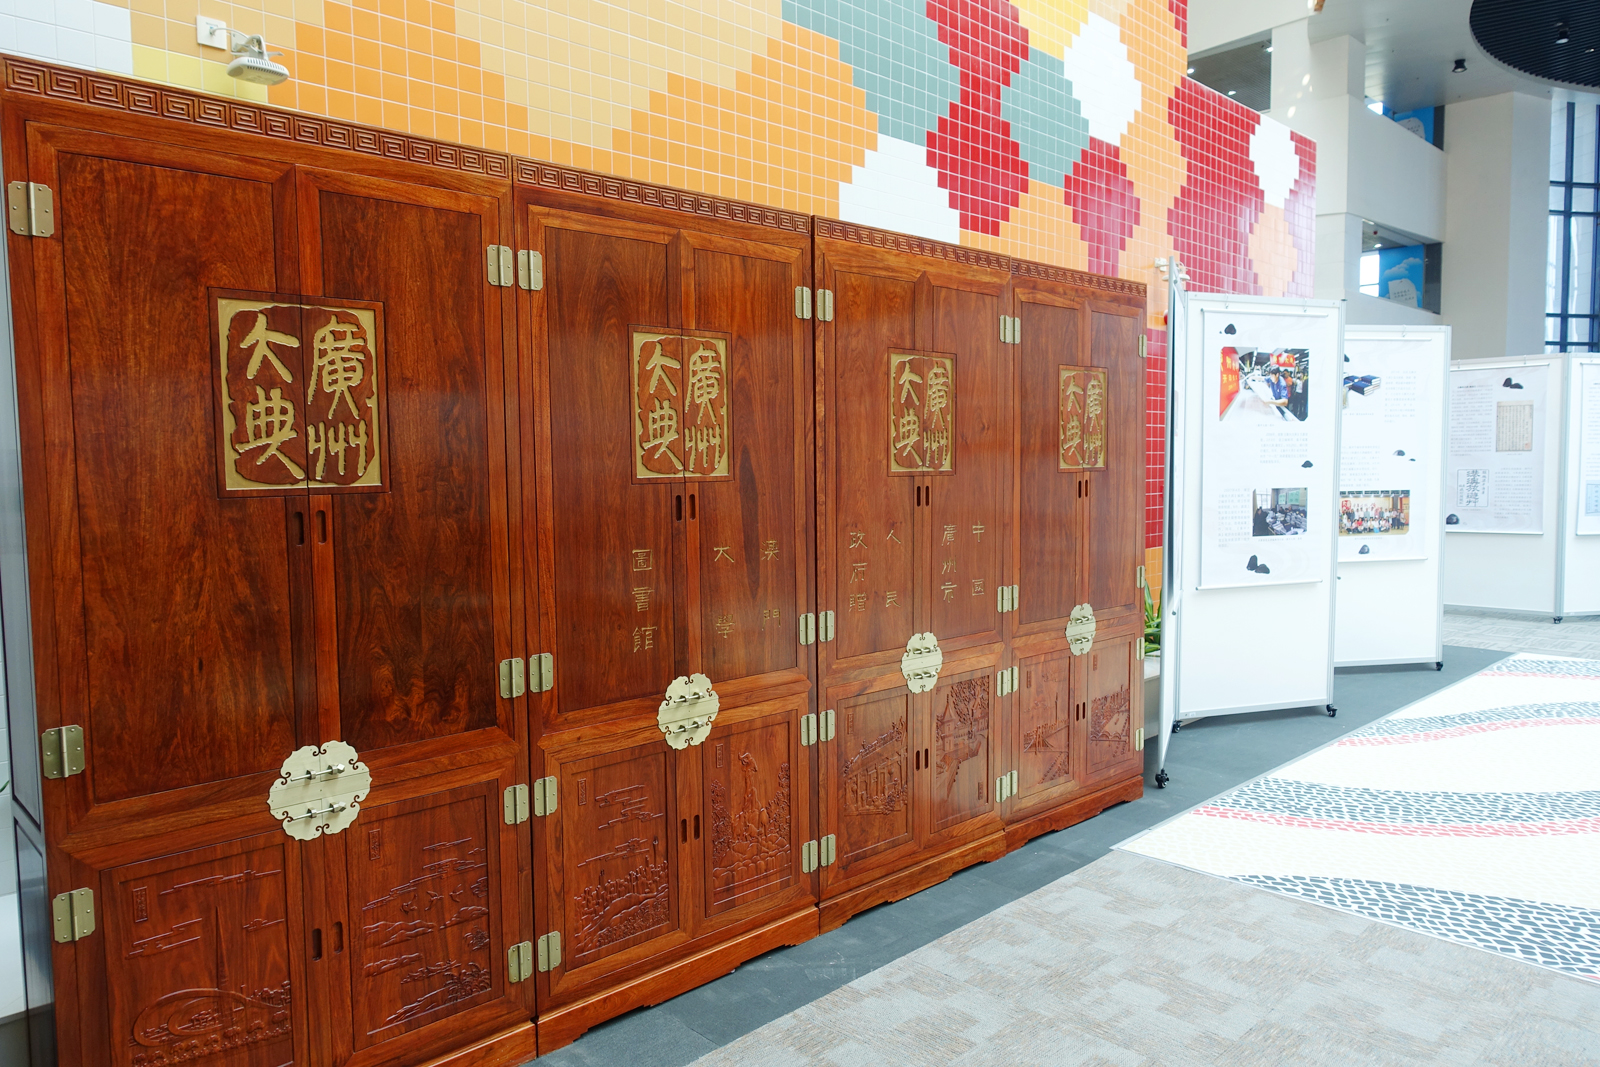 UM holds an exhibition of Guangzhou Encyclopedia